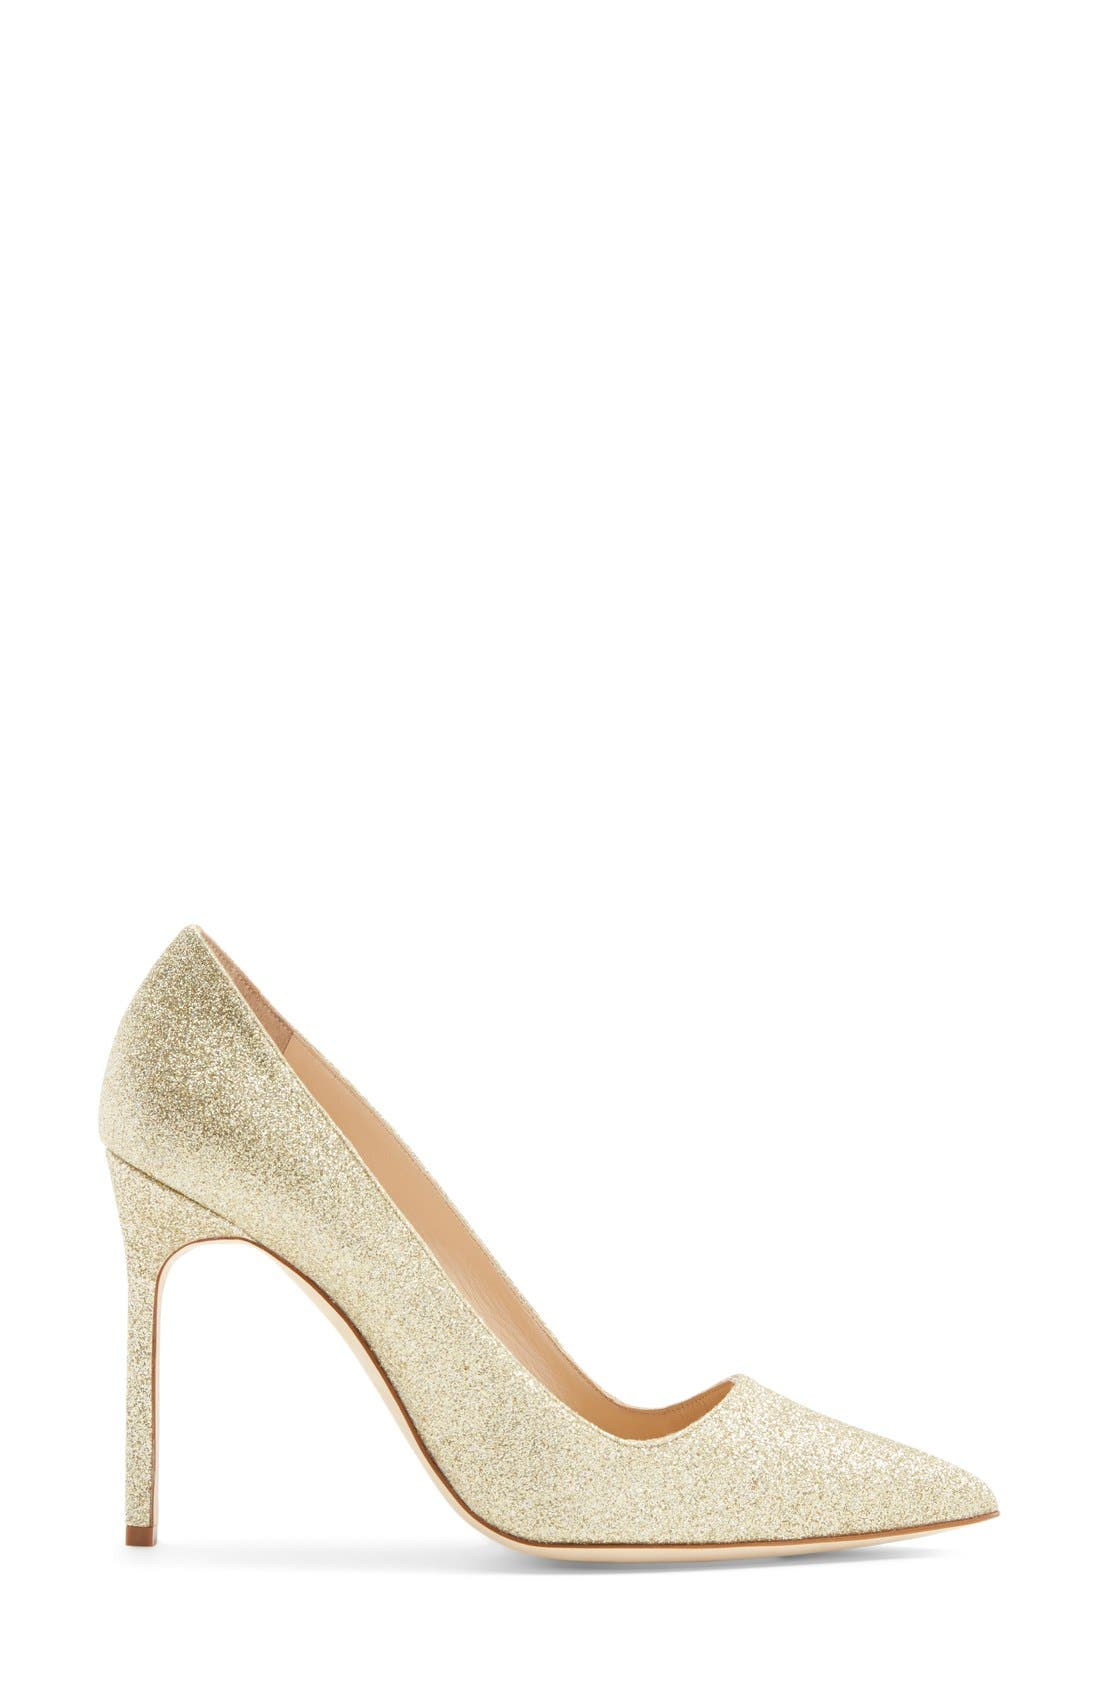 BB Pointy Toe Pump,                             Alternate thumbnail 58, color,